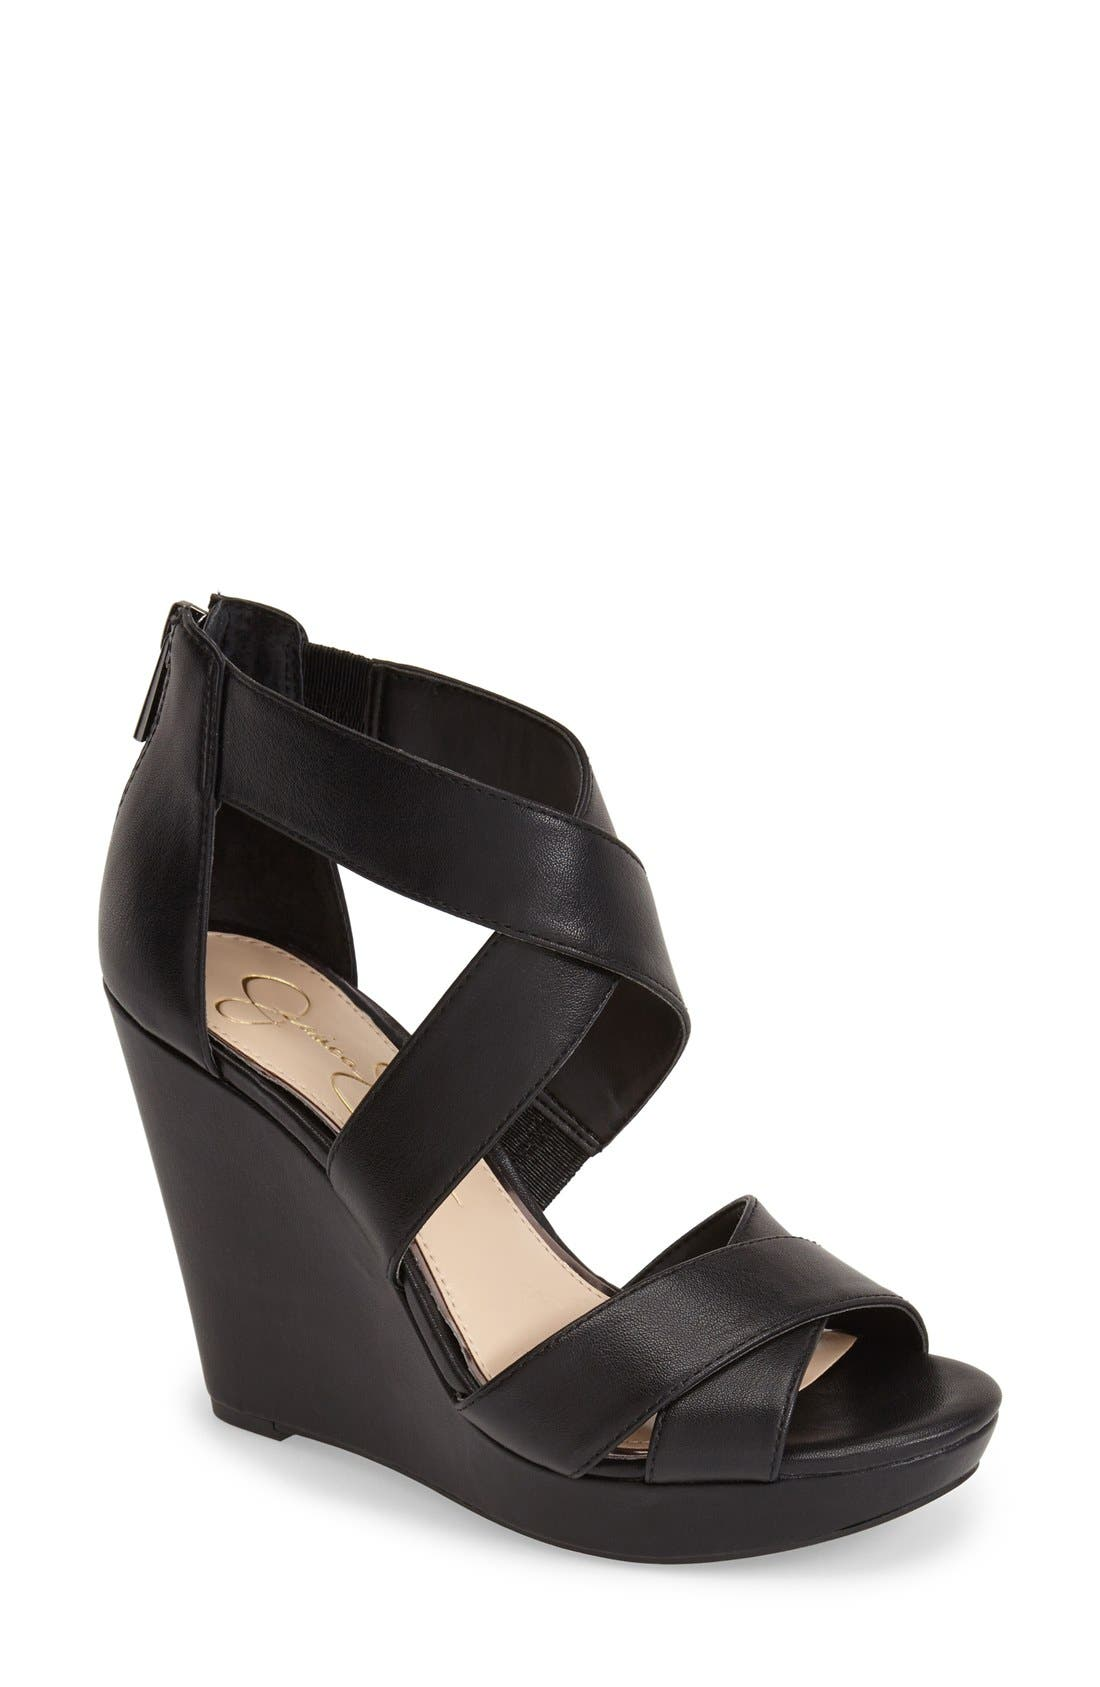 'Jadyn' Strappy Wedge Sandal,                             Main thumbnail 1, color,                             001